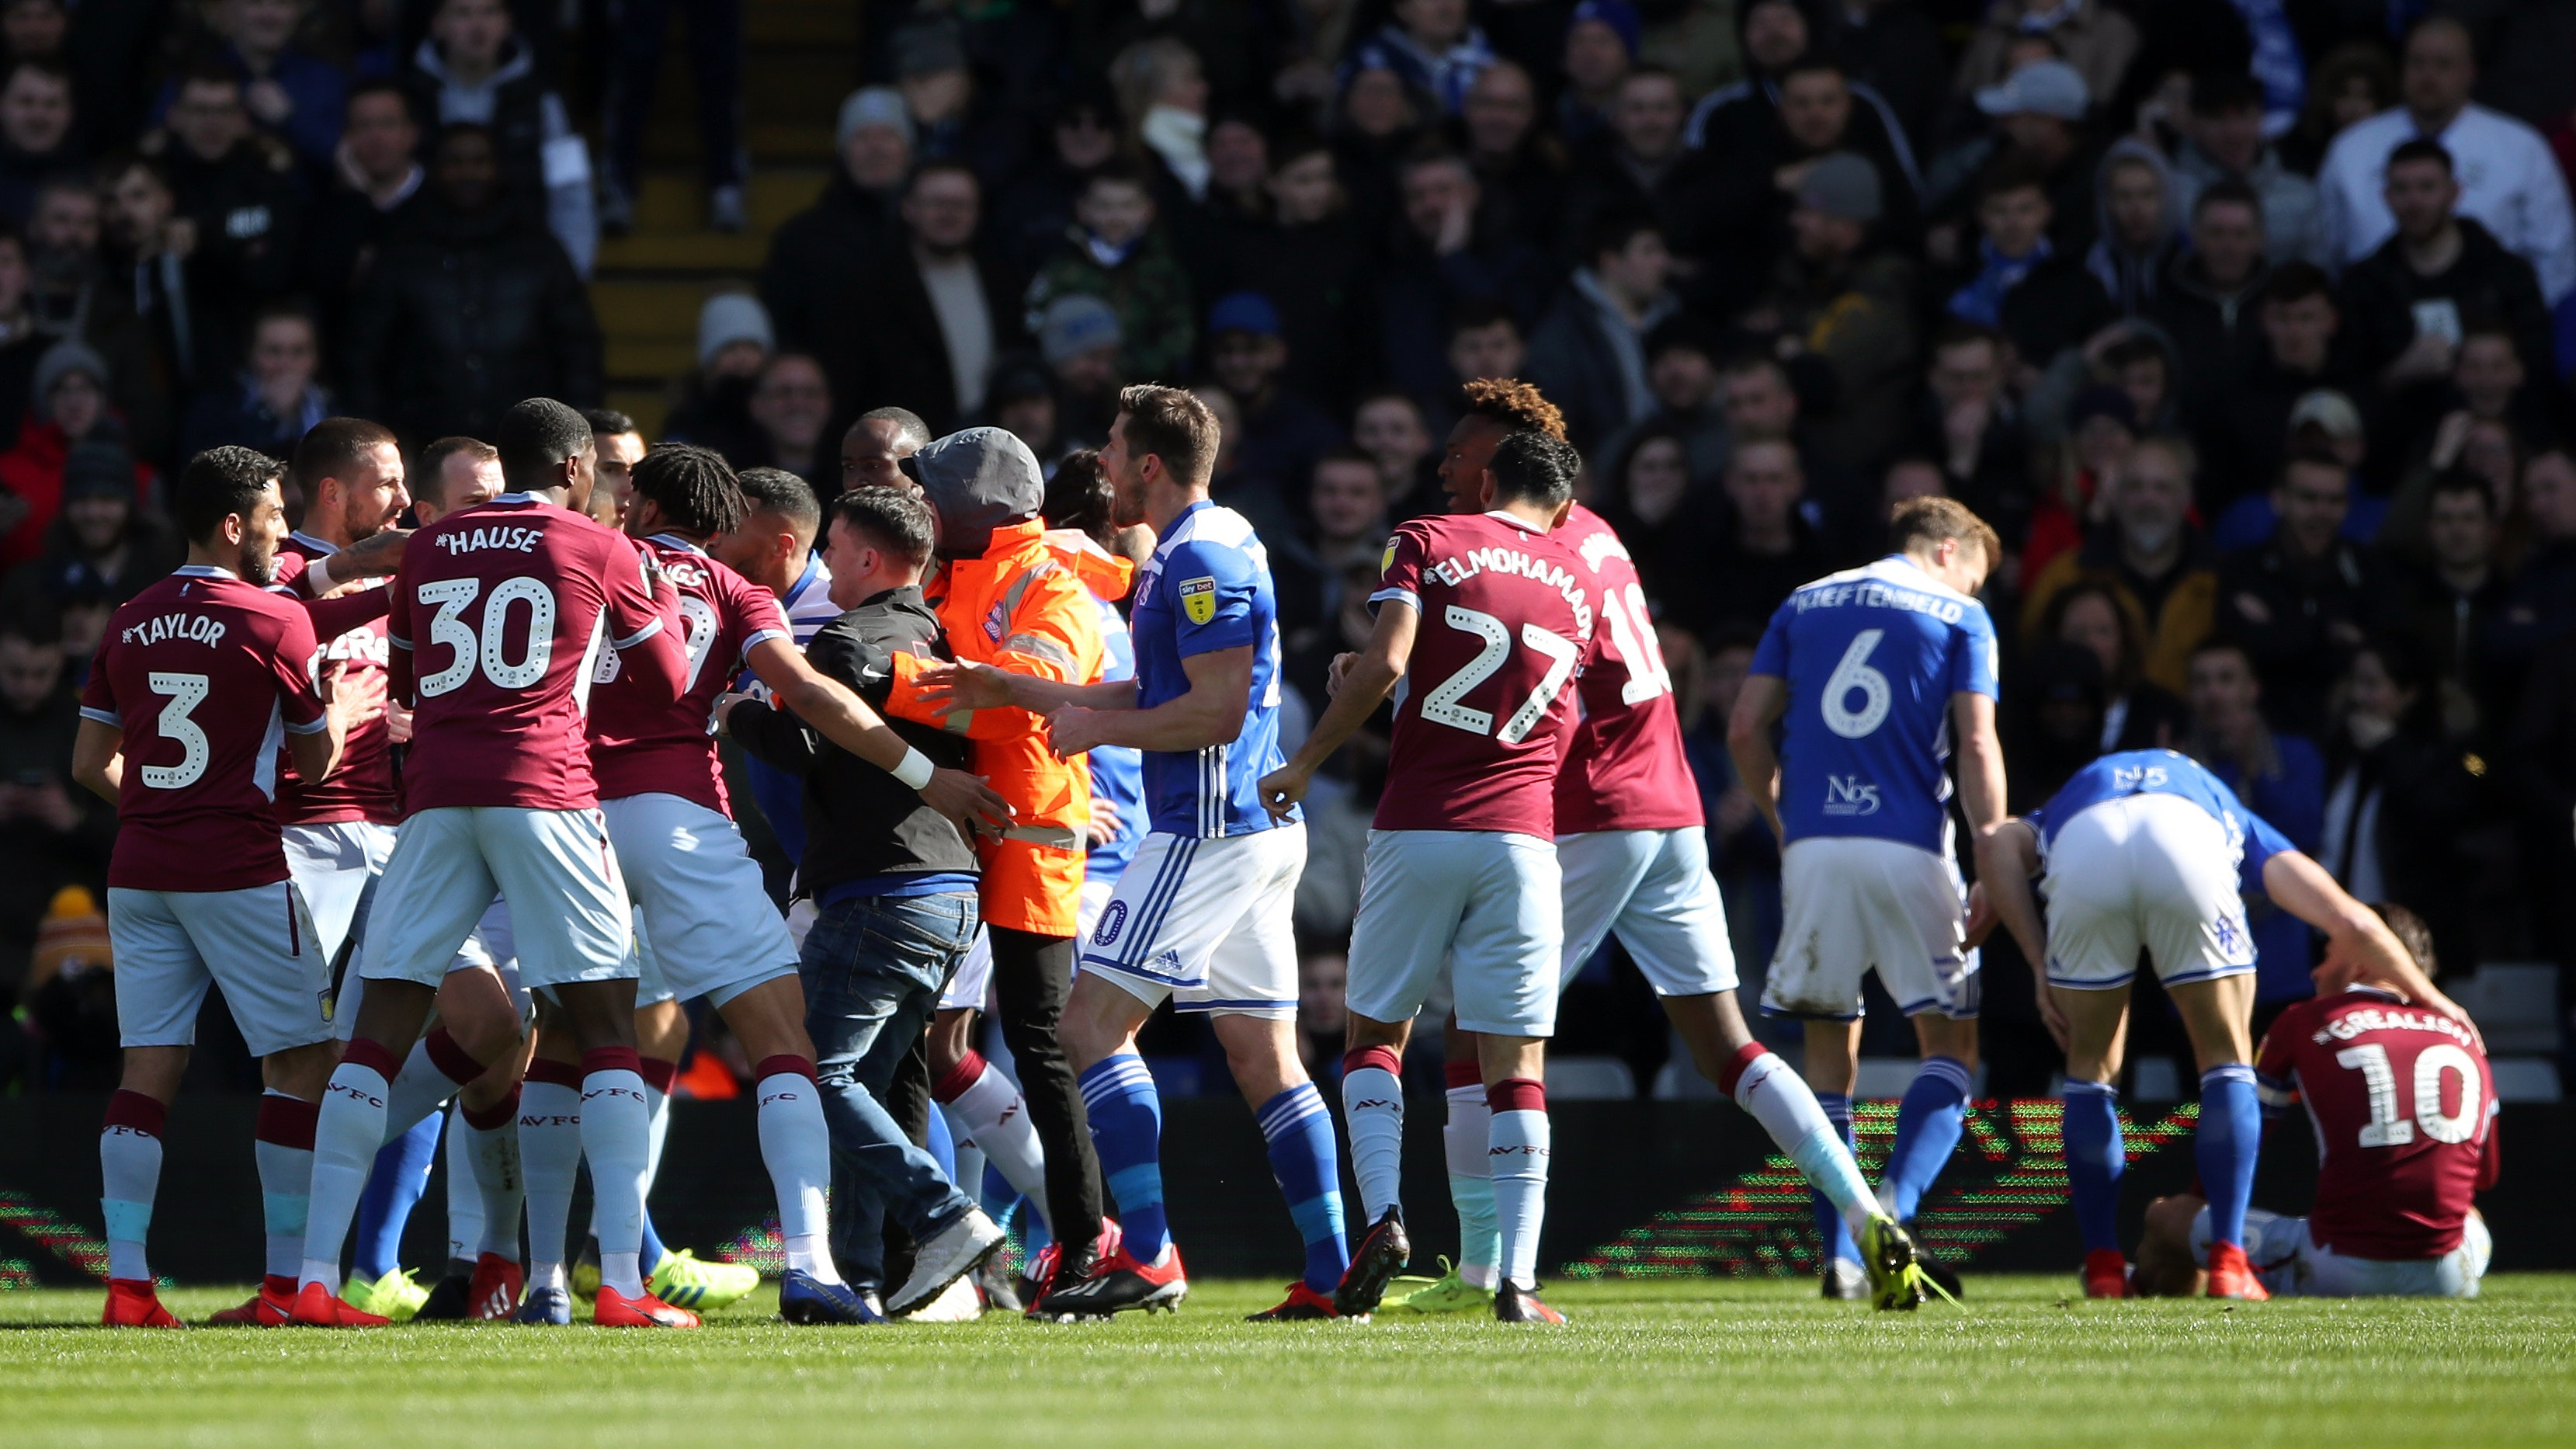 Birmingham fan who punched player on pitch jailed for 14 weeks | BT